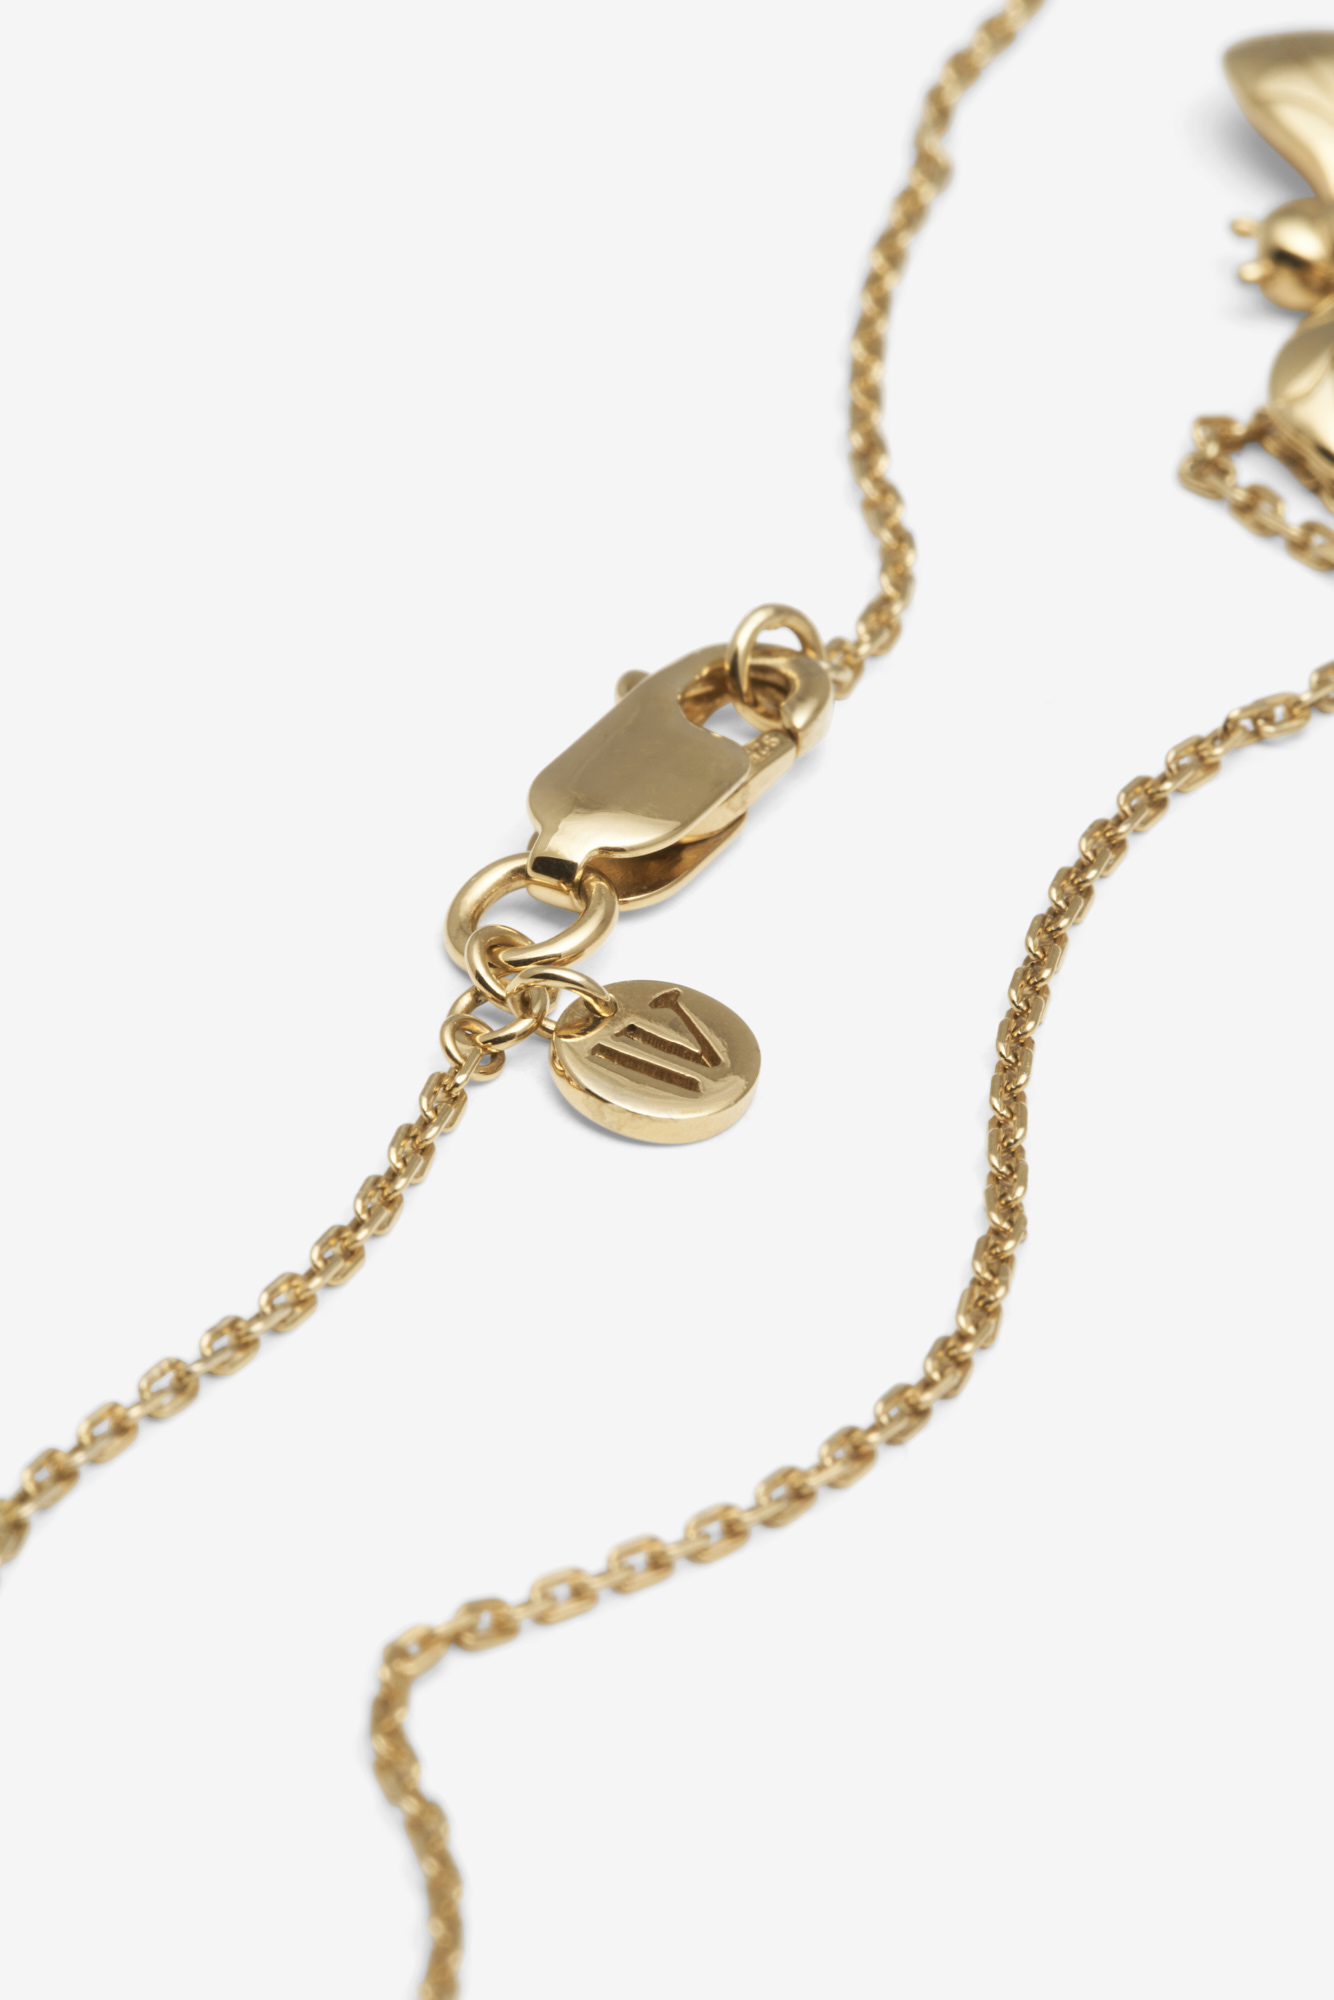 19-03-5-1-002-113-10_Bee Necklace_Gold Plated_03